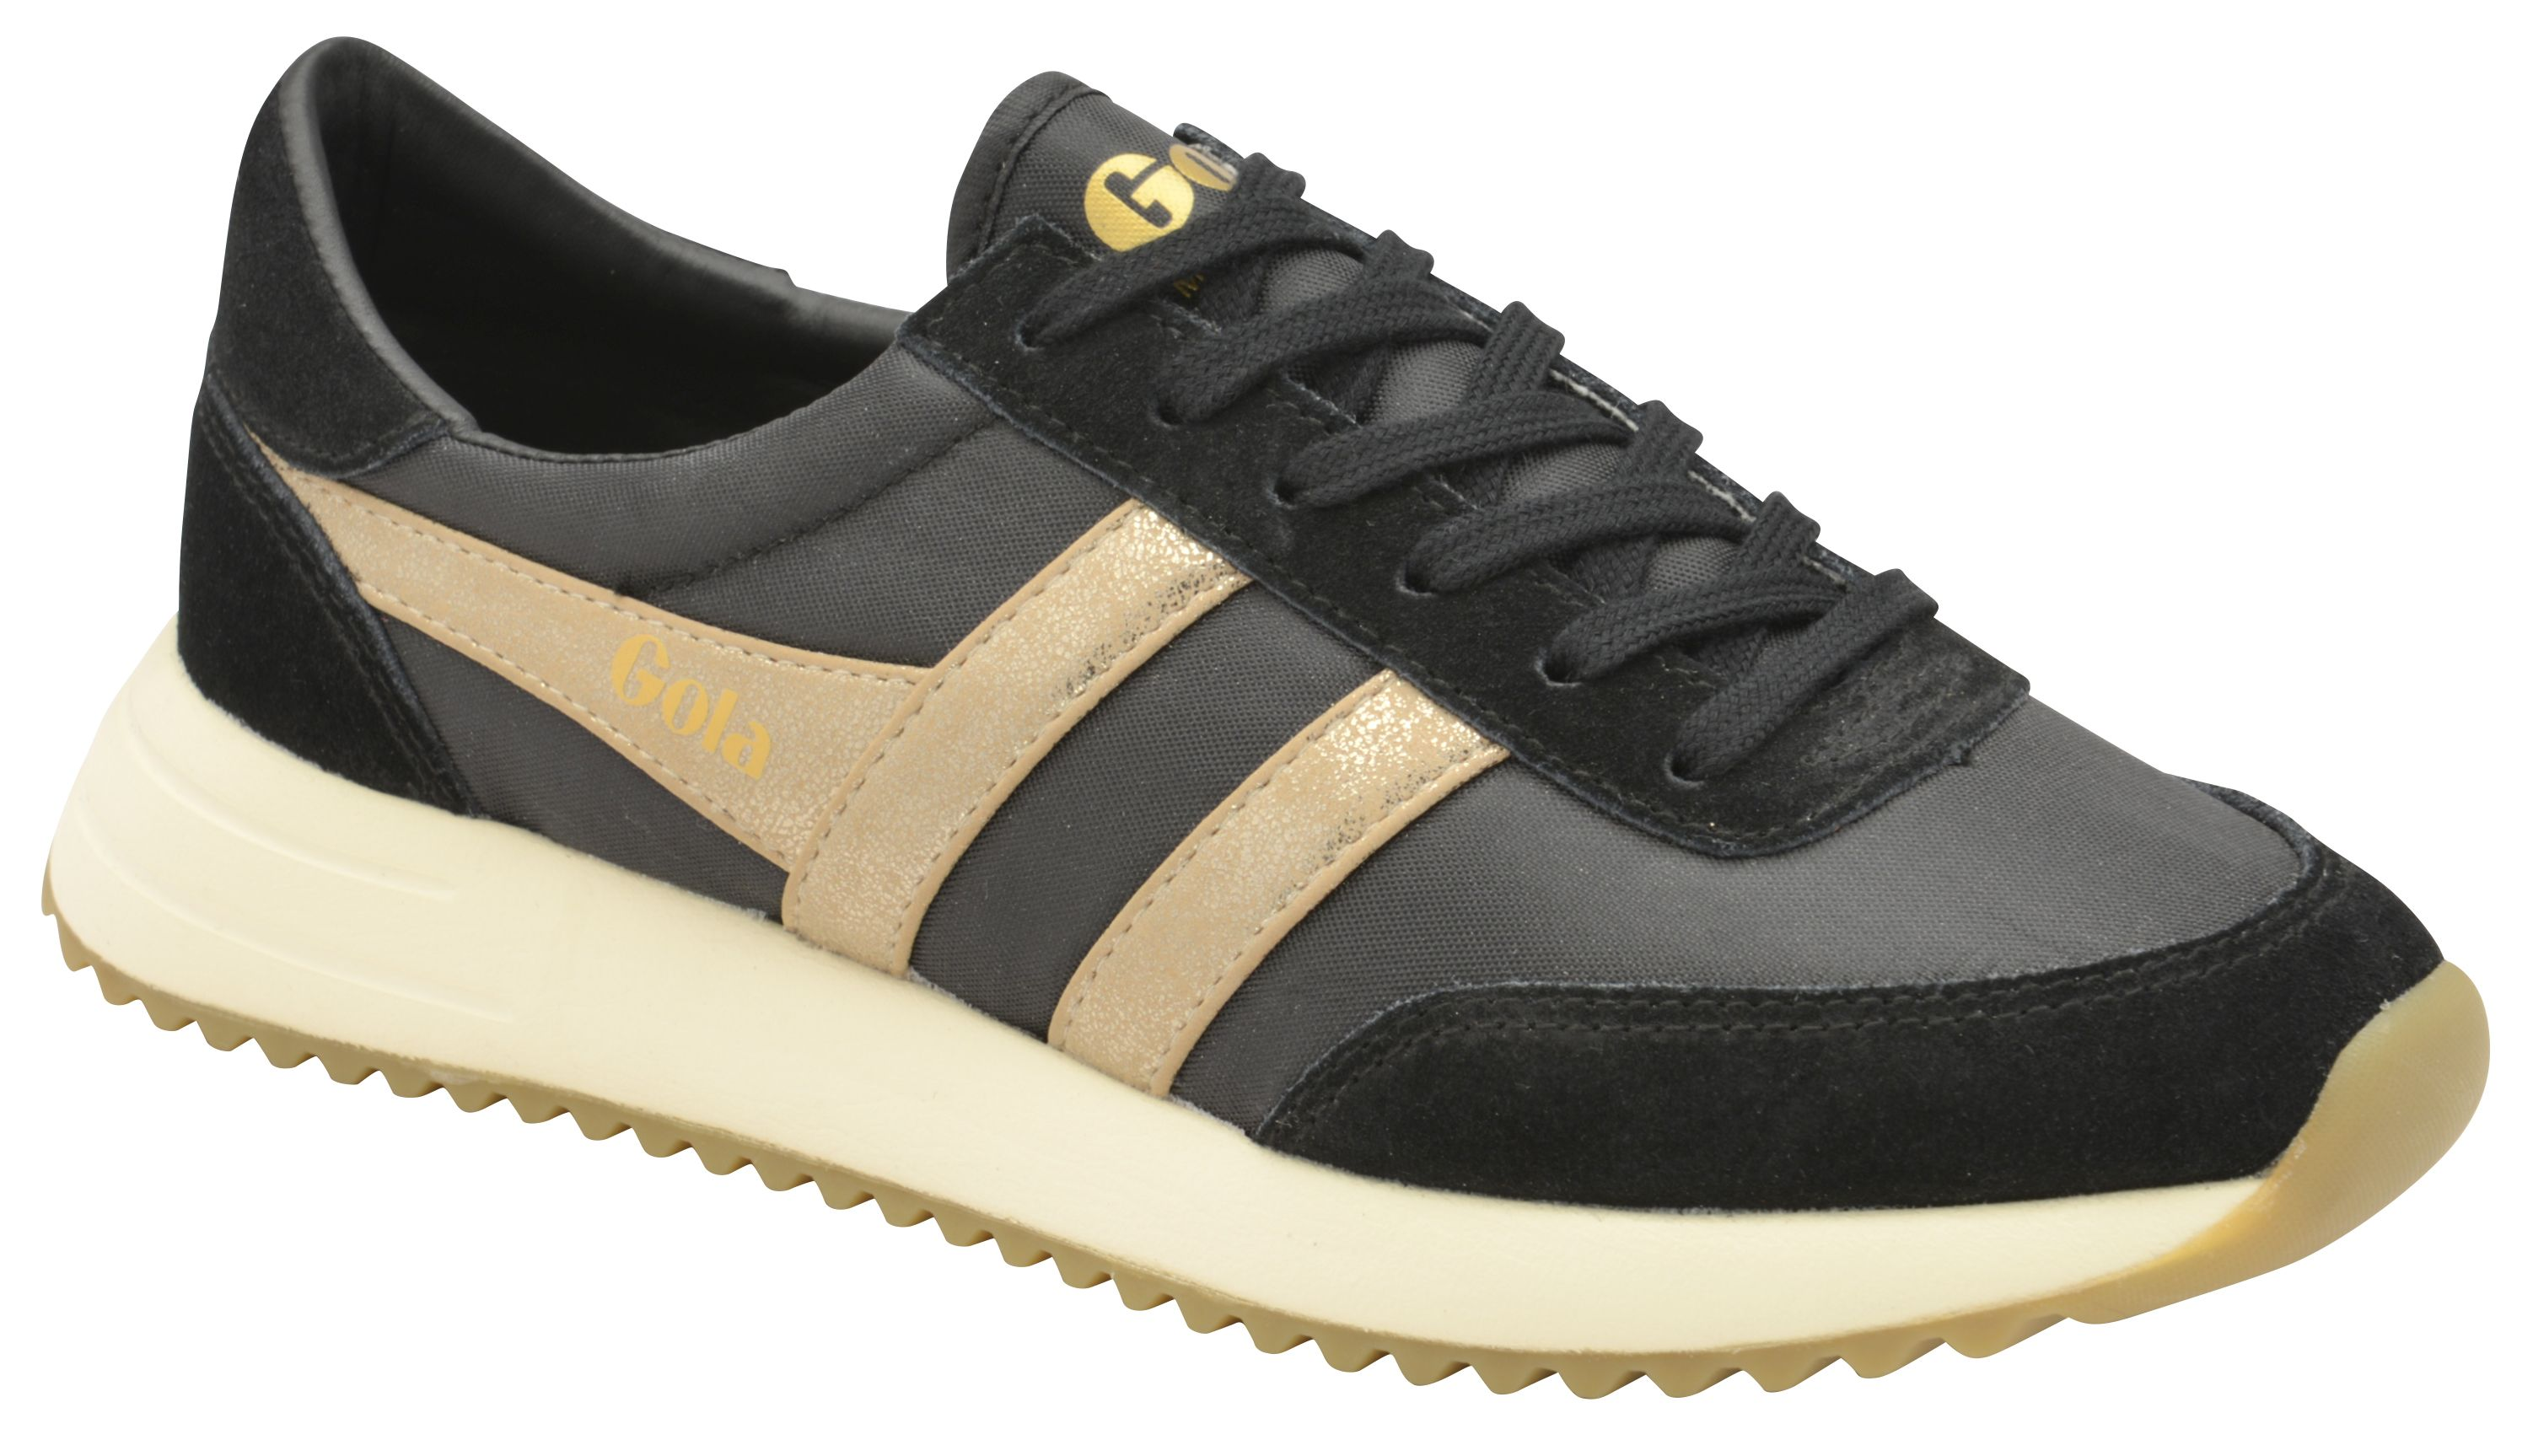 Gola Montreal Mirror Lace Up Trainers, Black